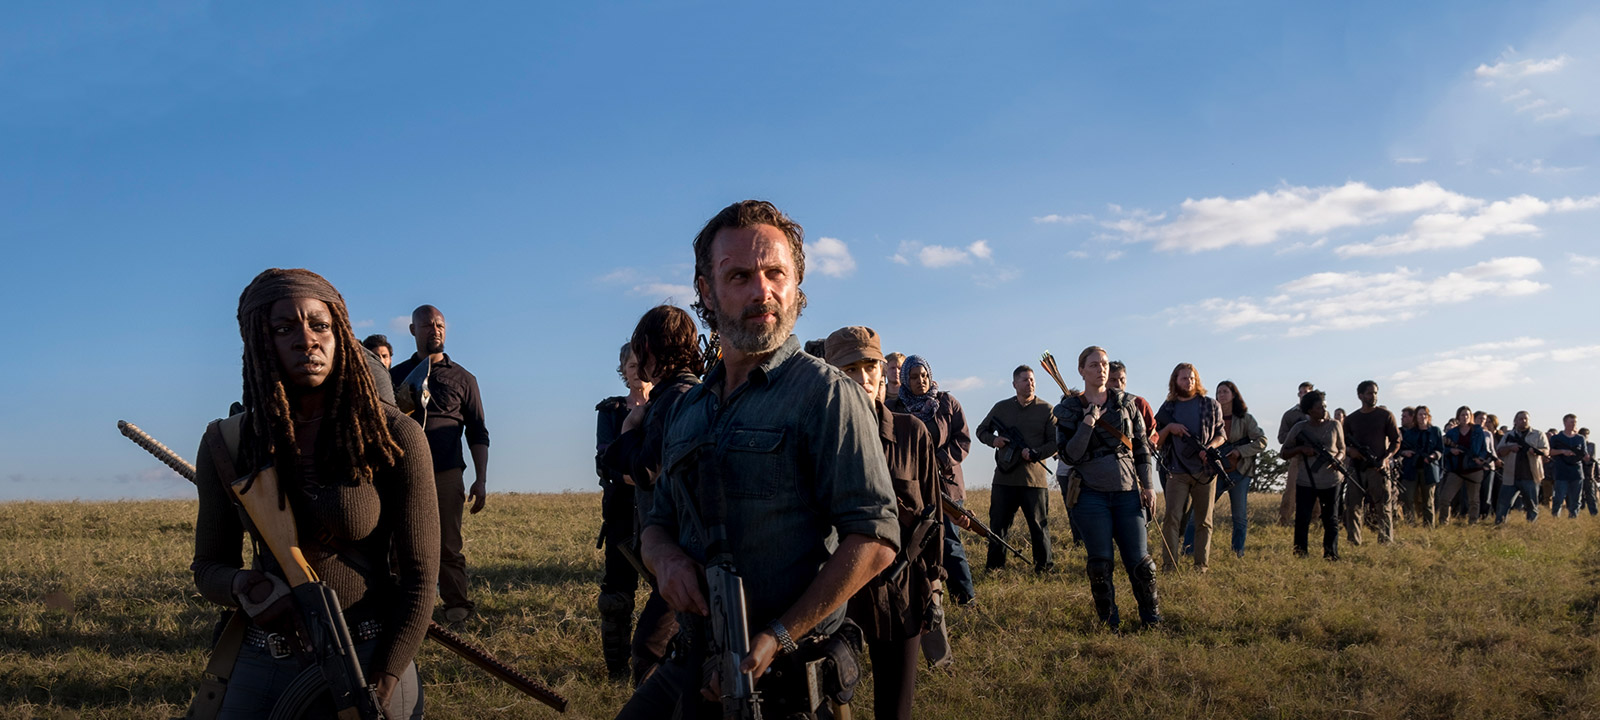 the-walking-dead-episode-816-michonne-gurira-rick-lincoln-extended-800×600